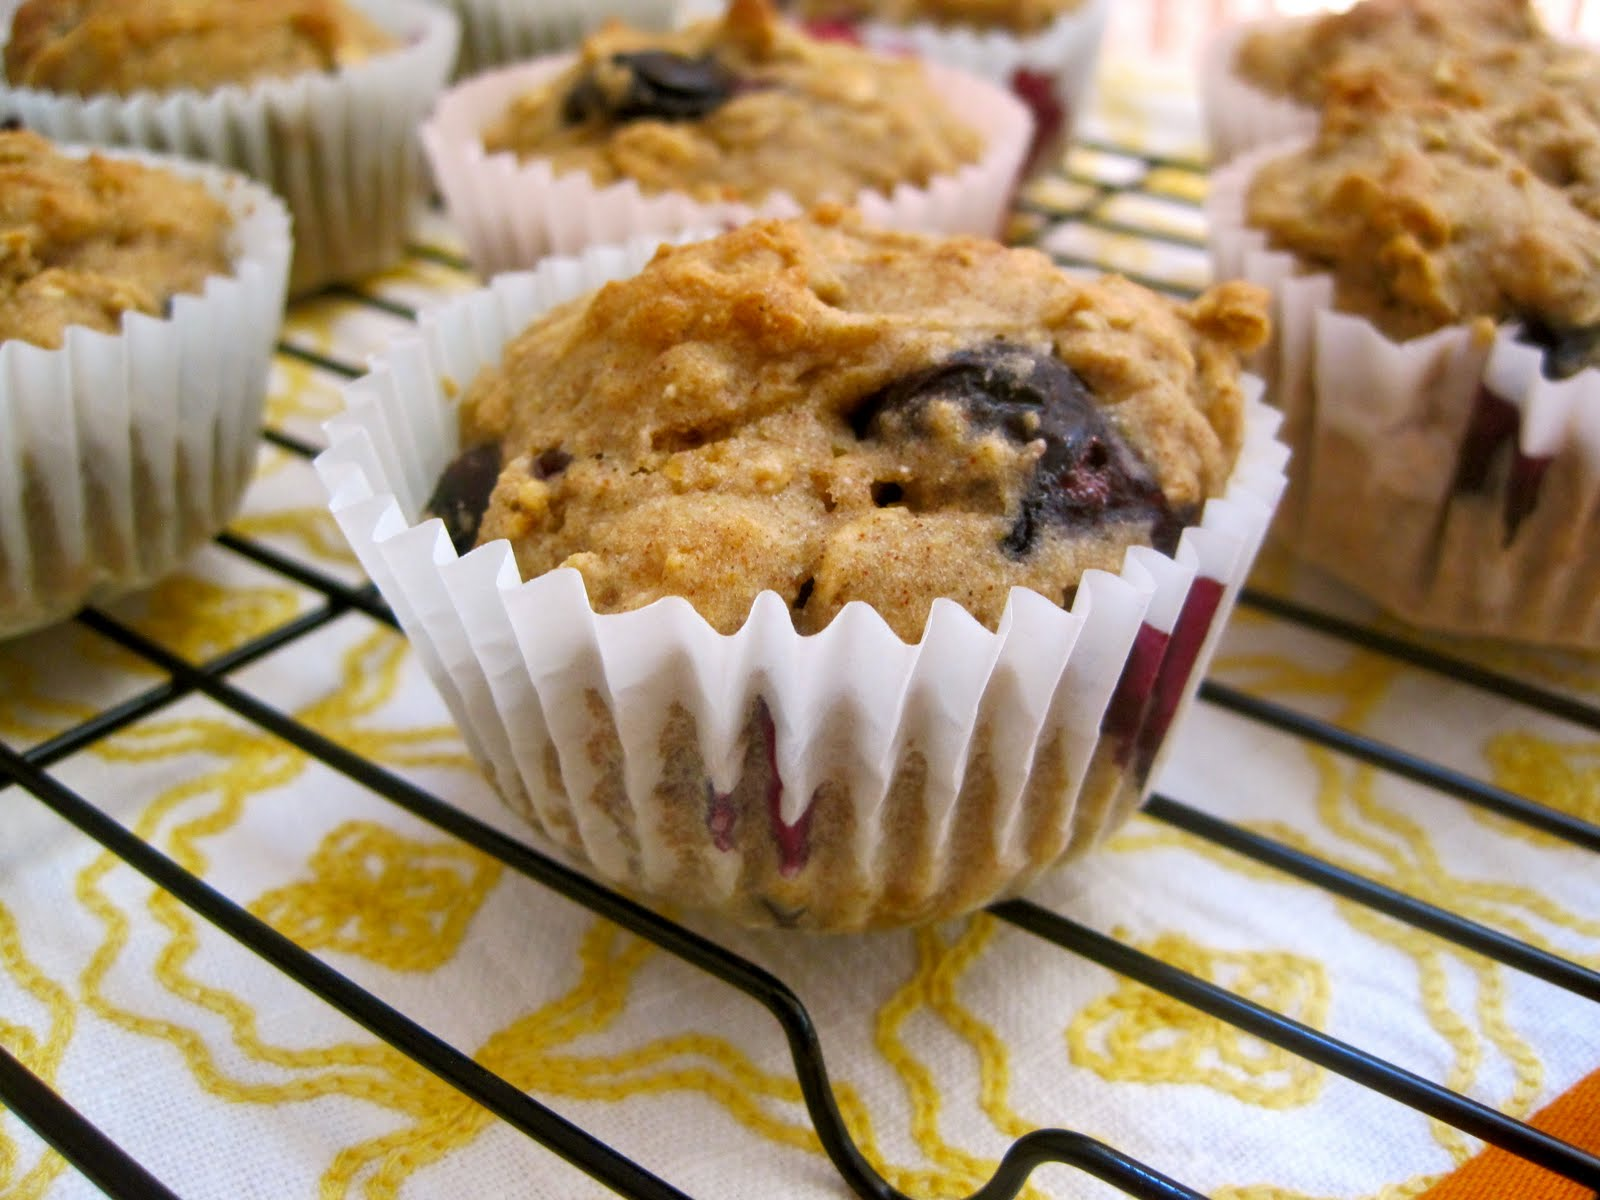 delectably gluten-free: Blueberry Oatmeal Applesauce Muffins